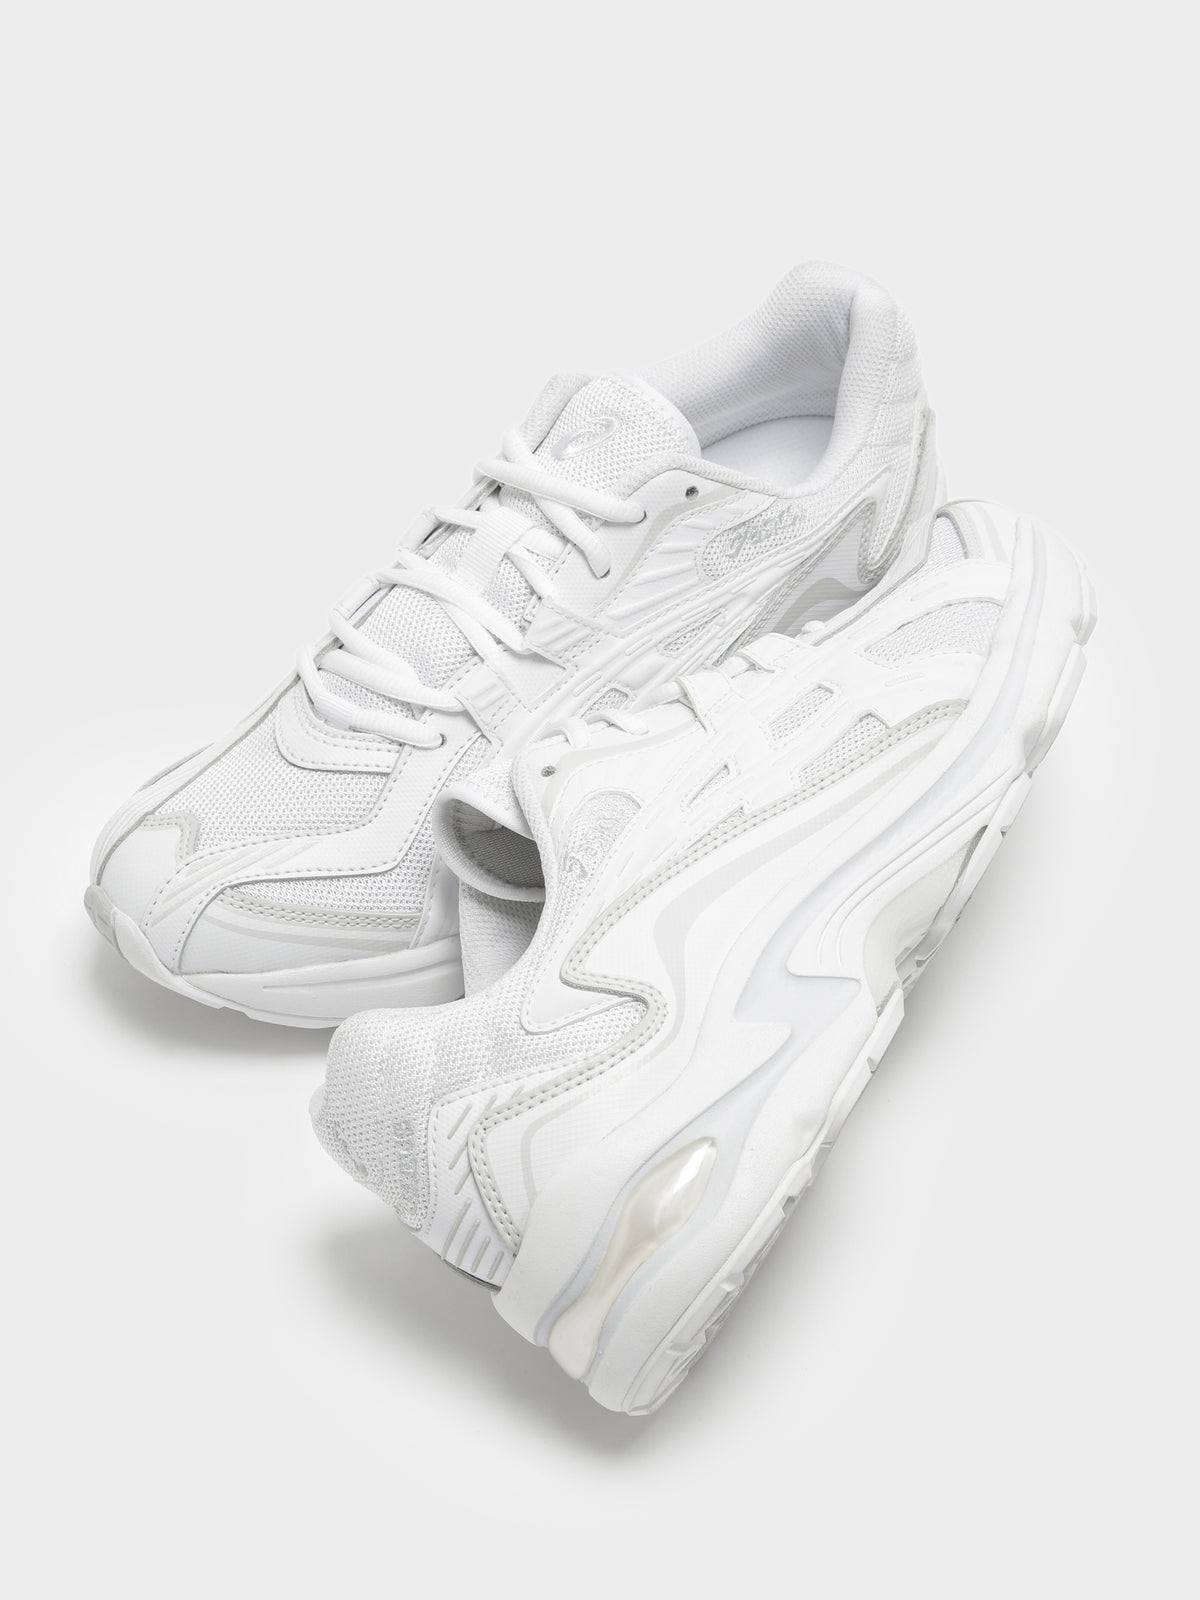 Mens GEL-PRELEUS Sneakers in White